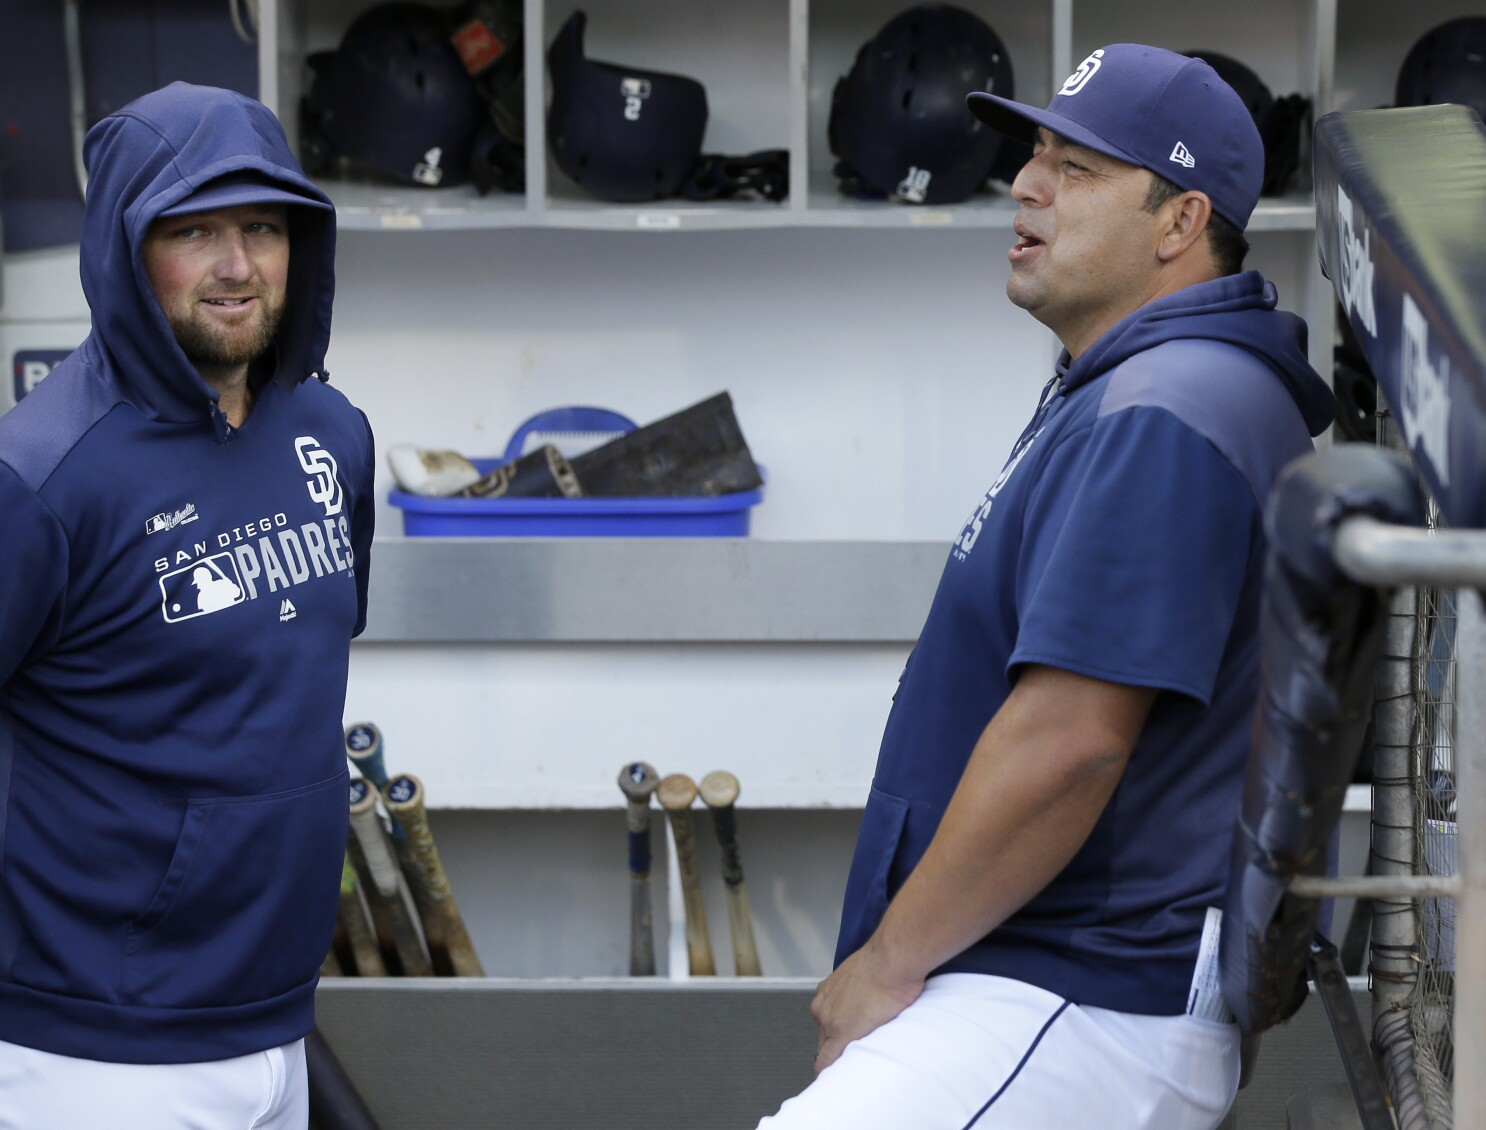 Find Manager padres must find manager, but also more major league players